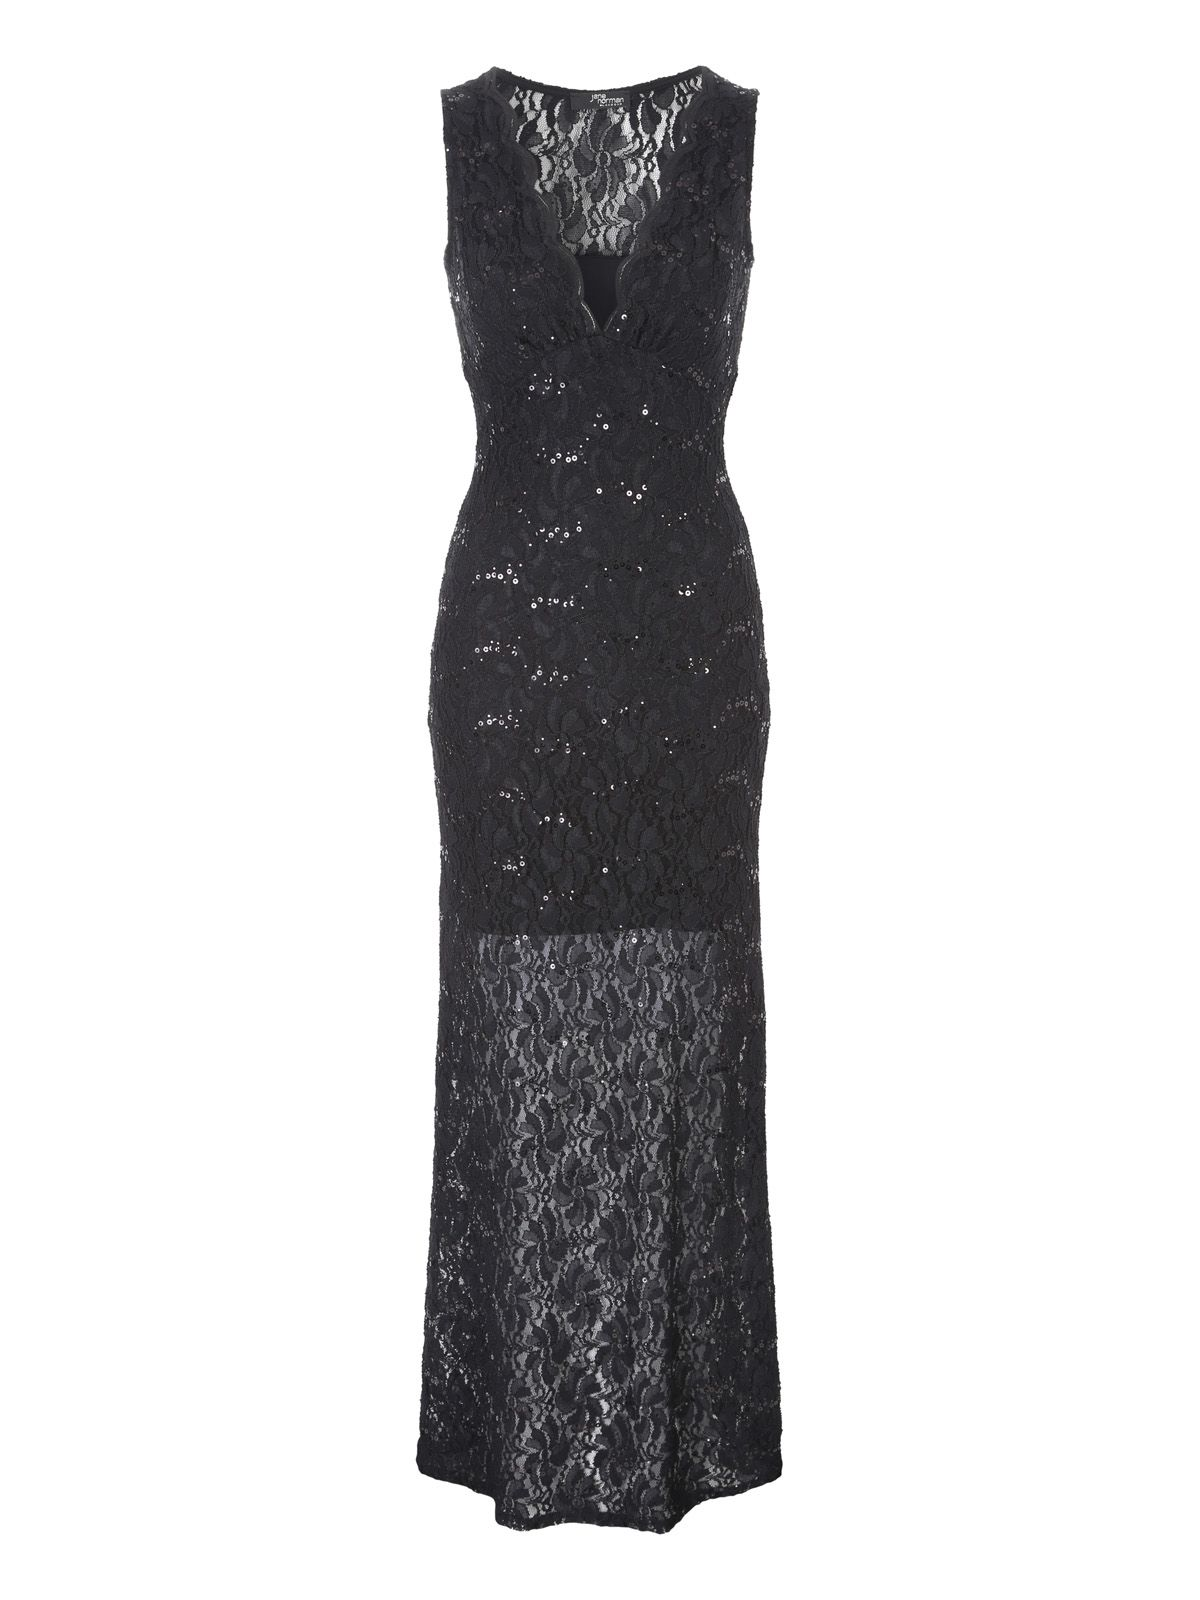 Jane Norman Sequin Lace Maxi Dress, Black